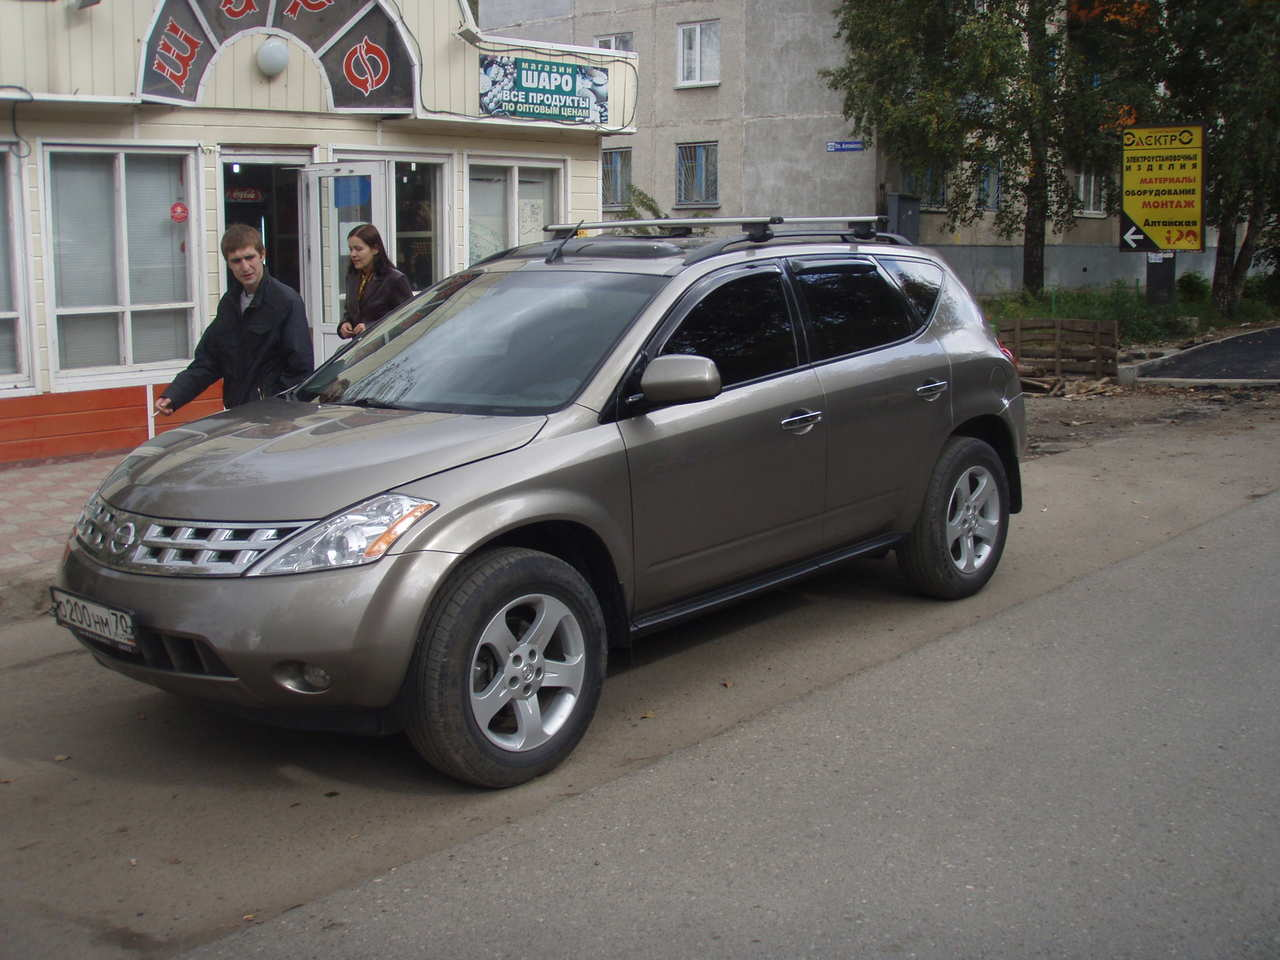 2004 nissan murano pictures, 3500cc., gasoline, cvt for